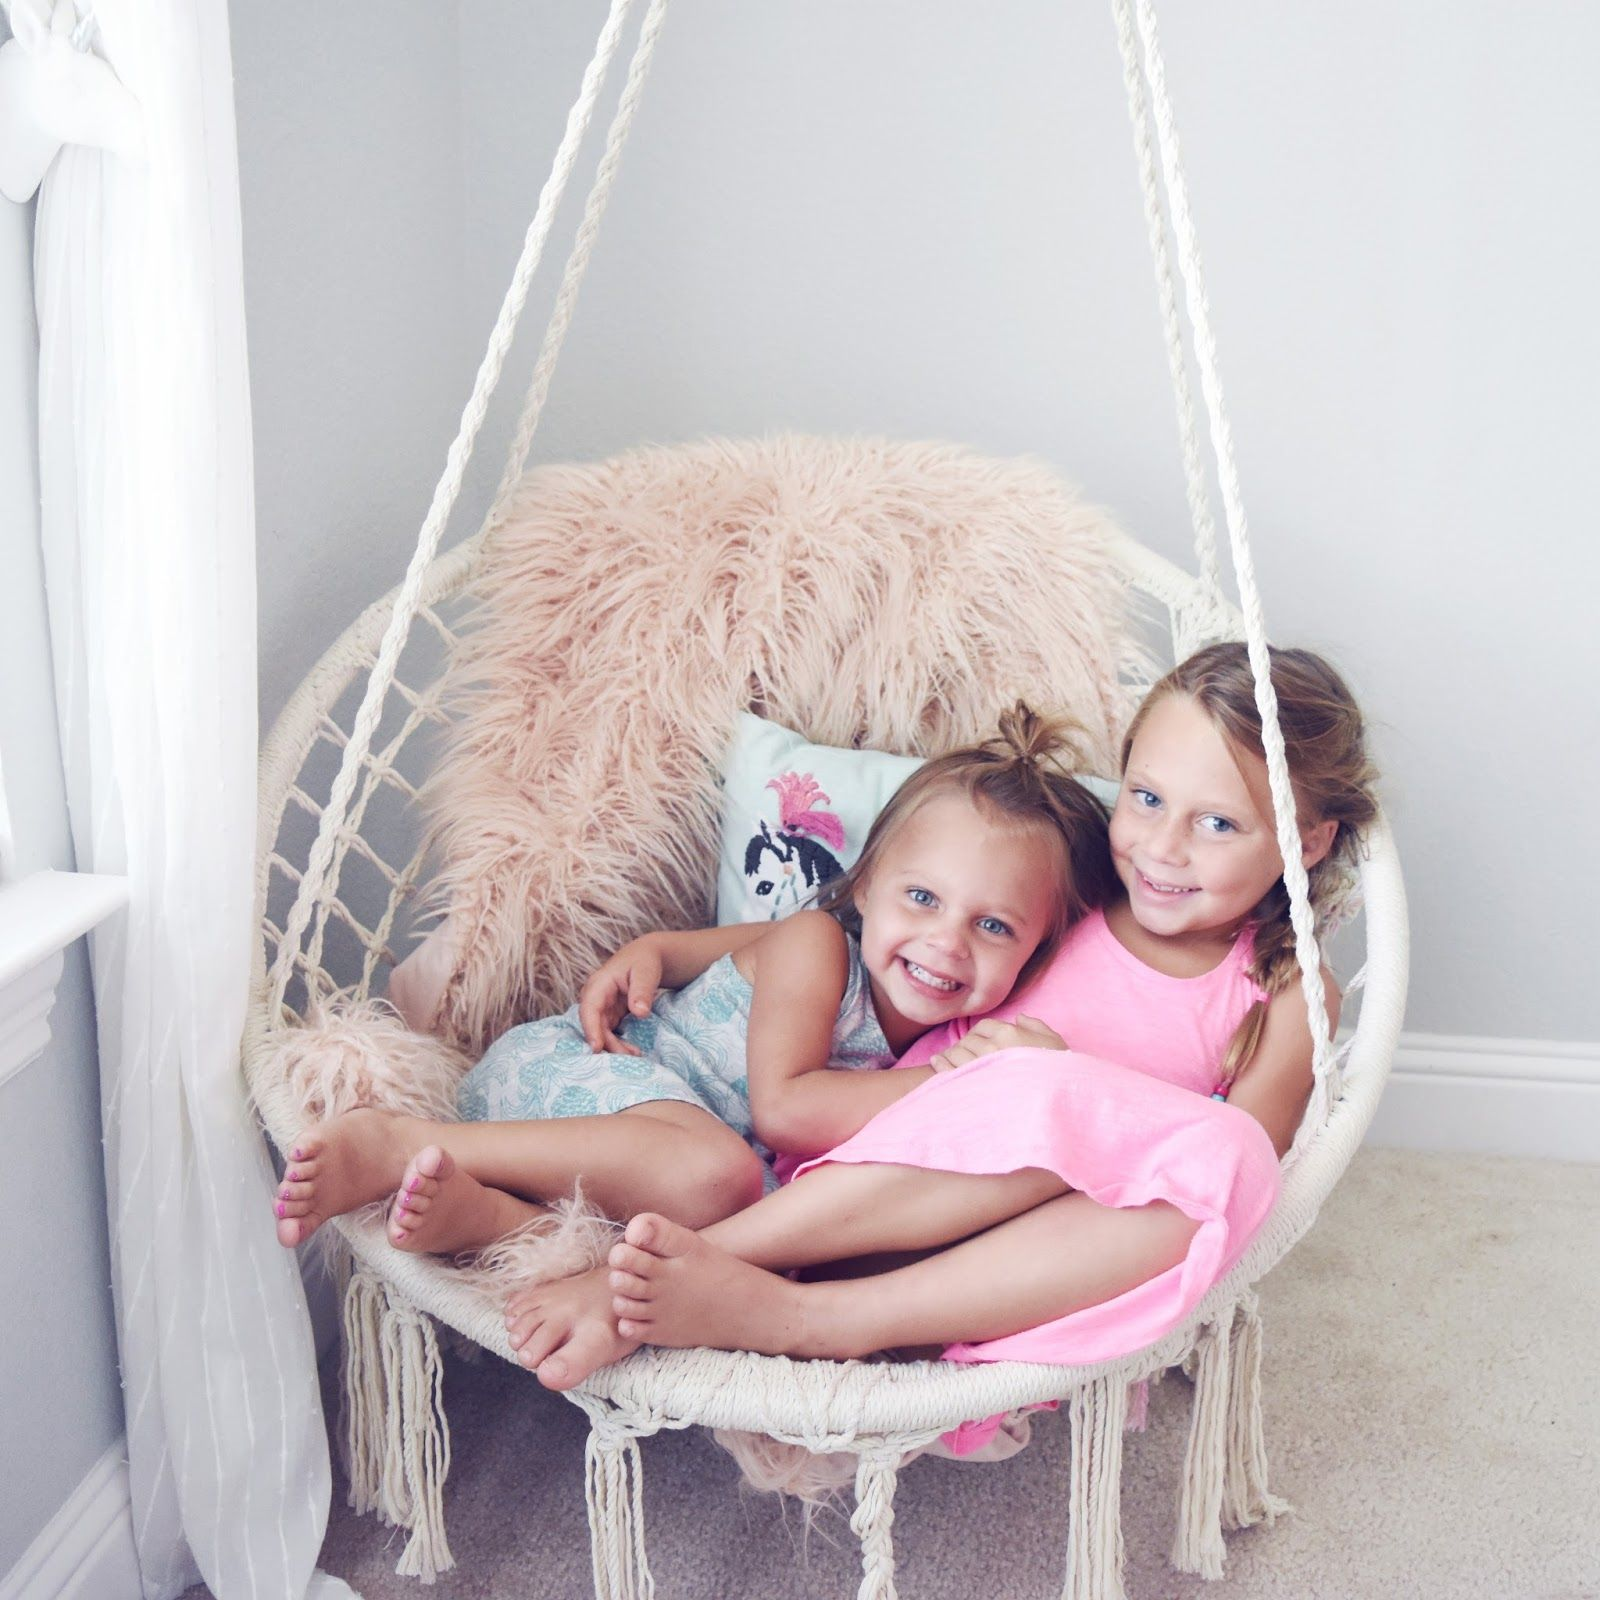 Pillow Thought Swinging Chair Room Swing Swing Chair Bedroom